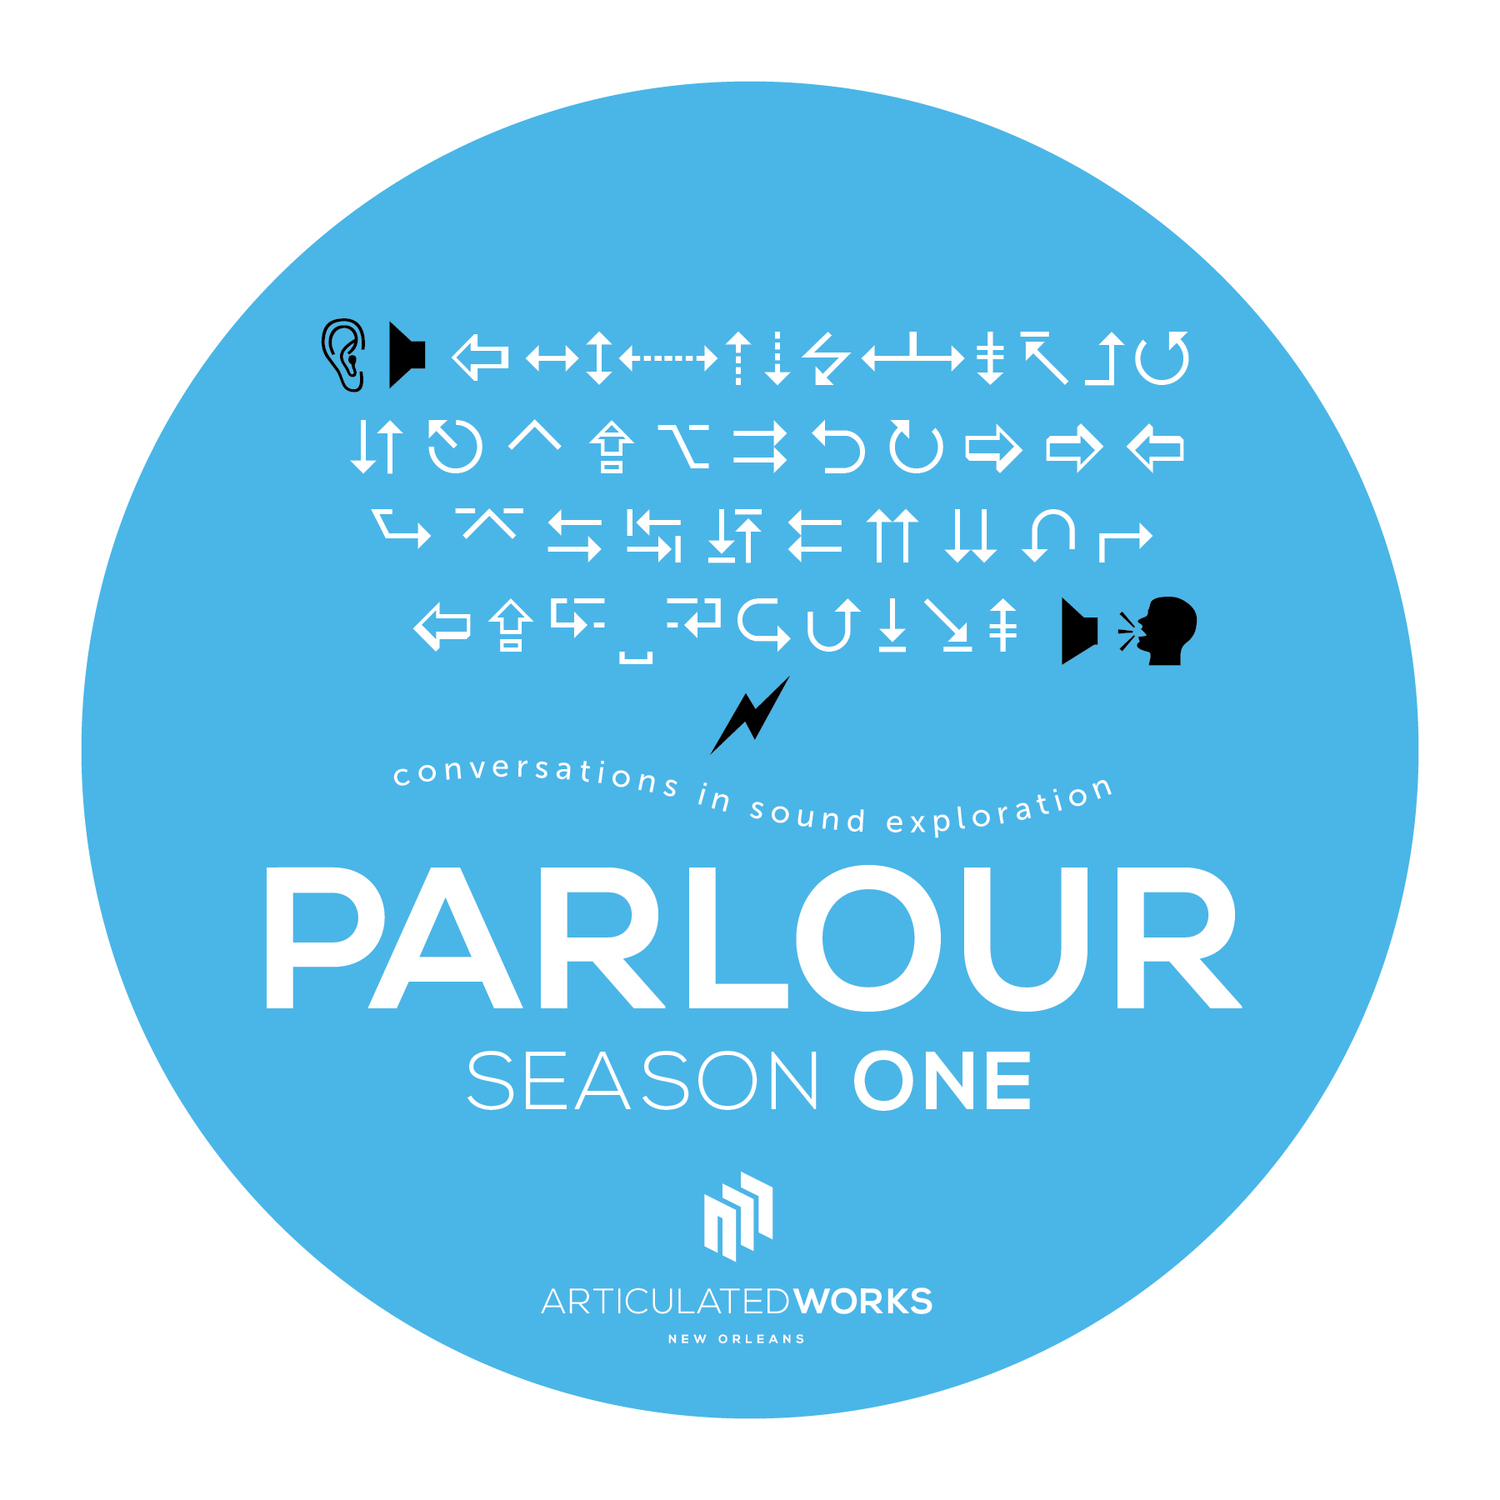 Parlour - Articulated Works